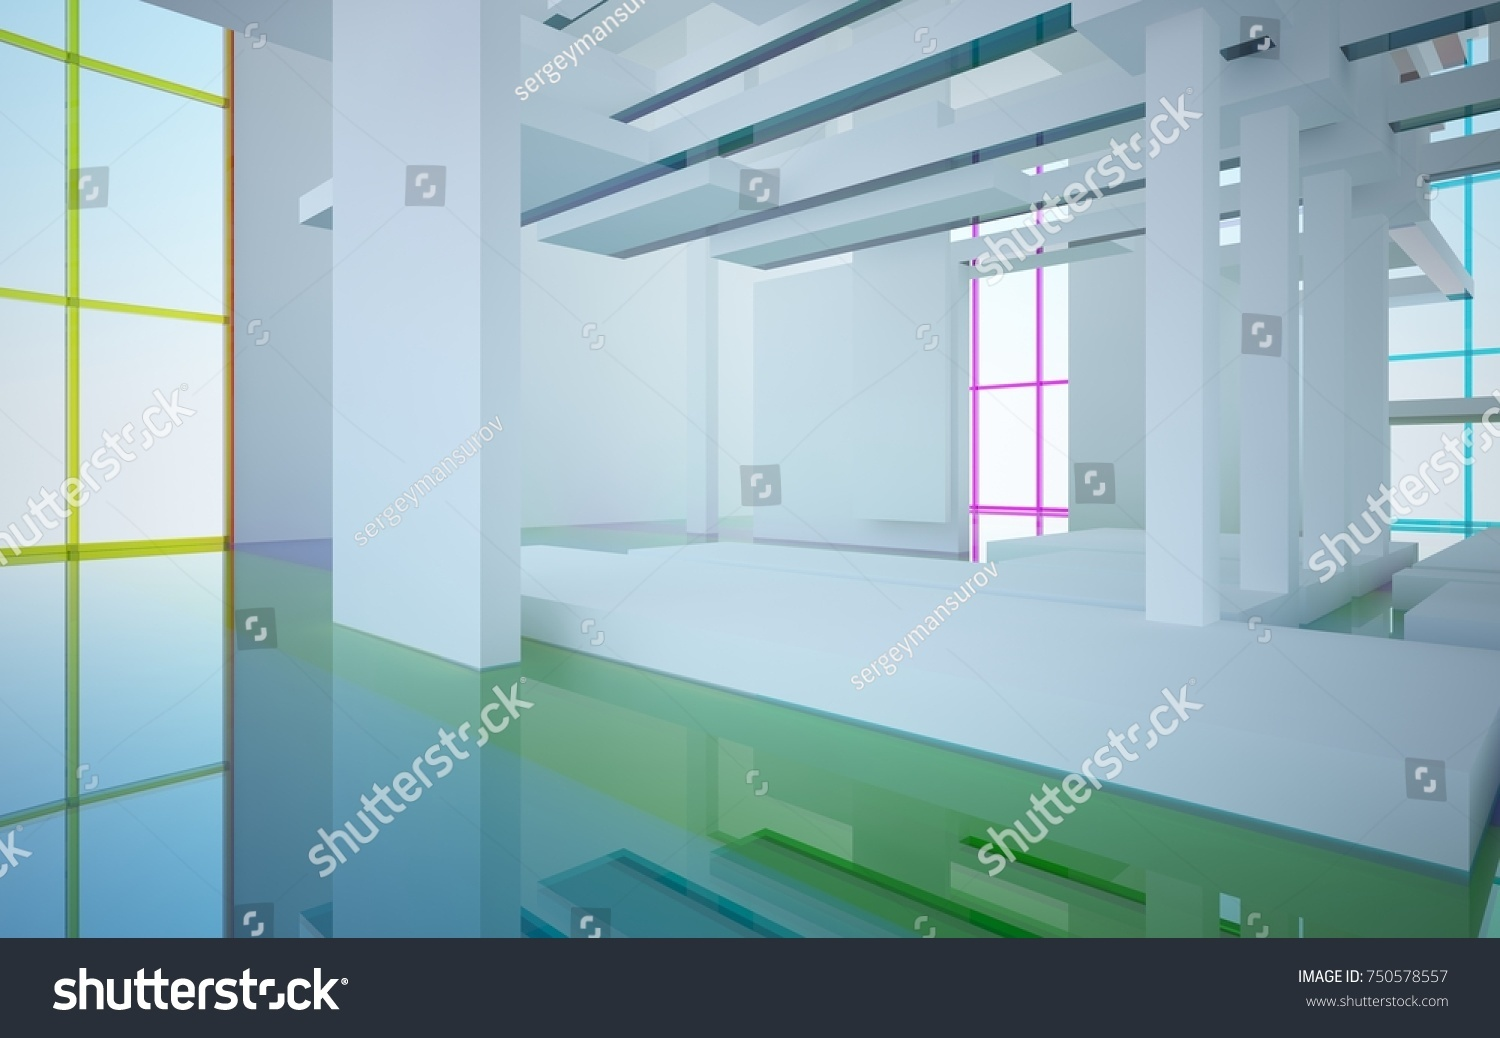 Abstract White Colored Gradient Glasses Interior Stock Illustration ...